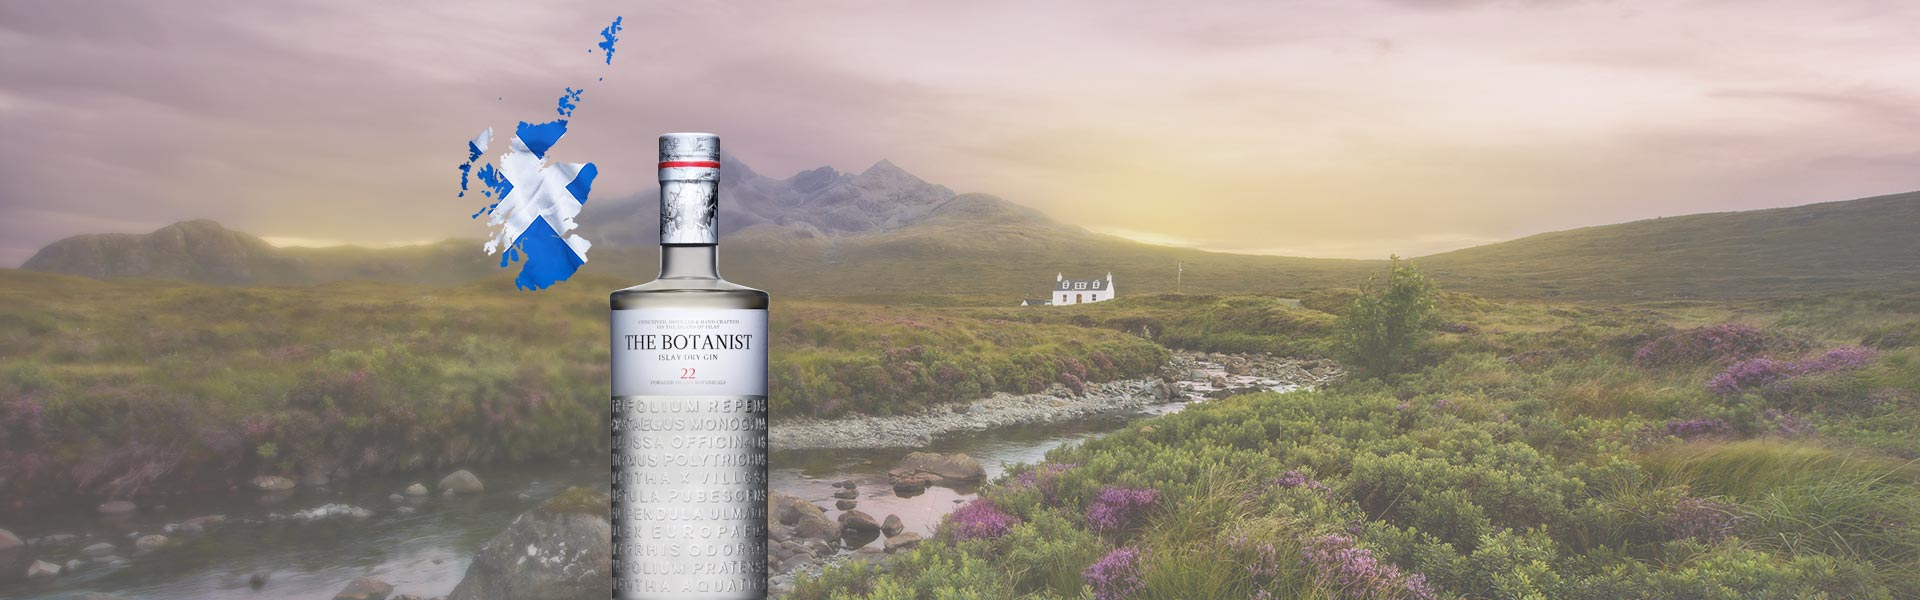 The Botanist 22 Islay Gin